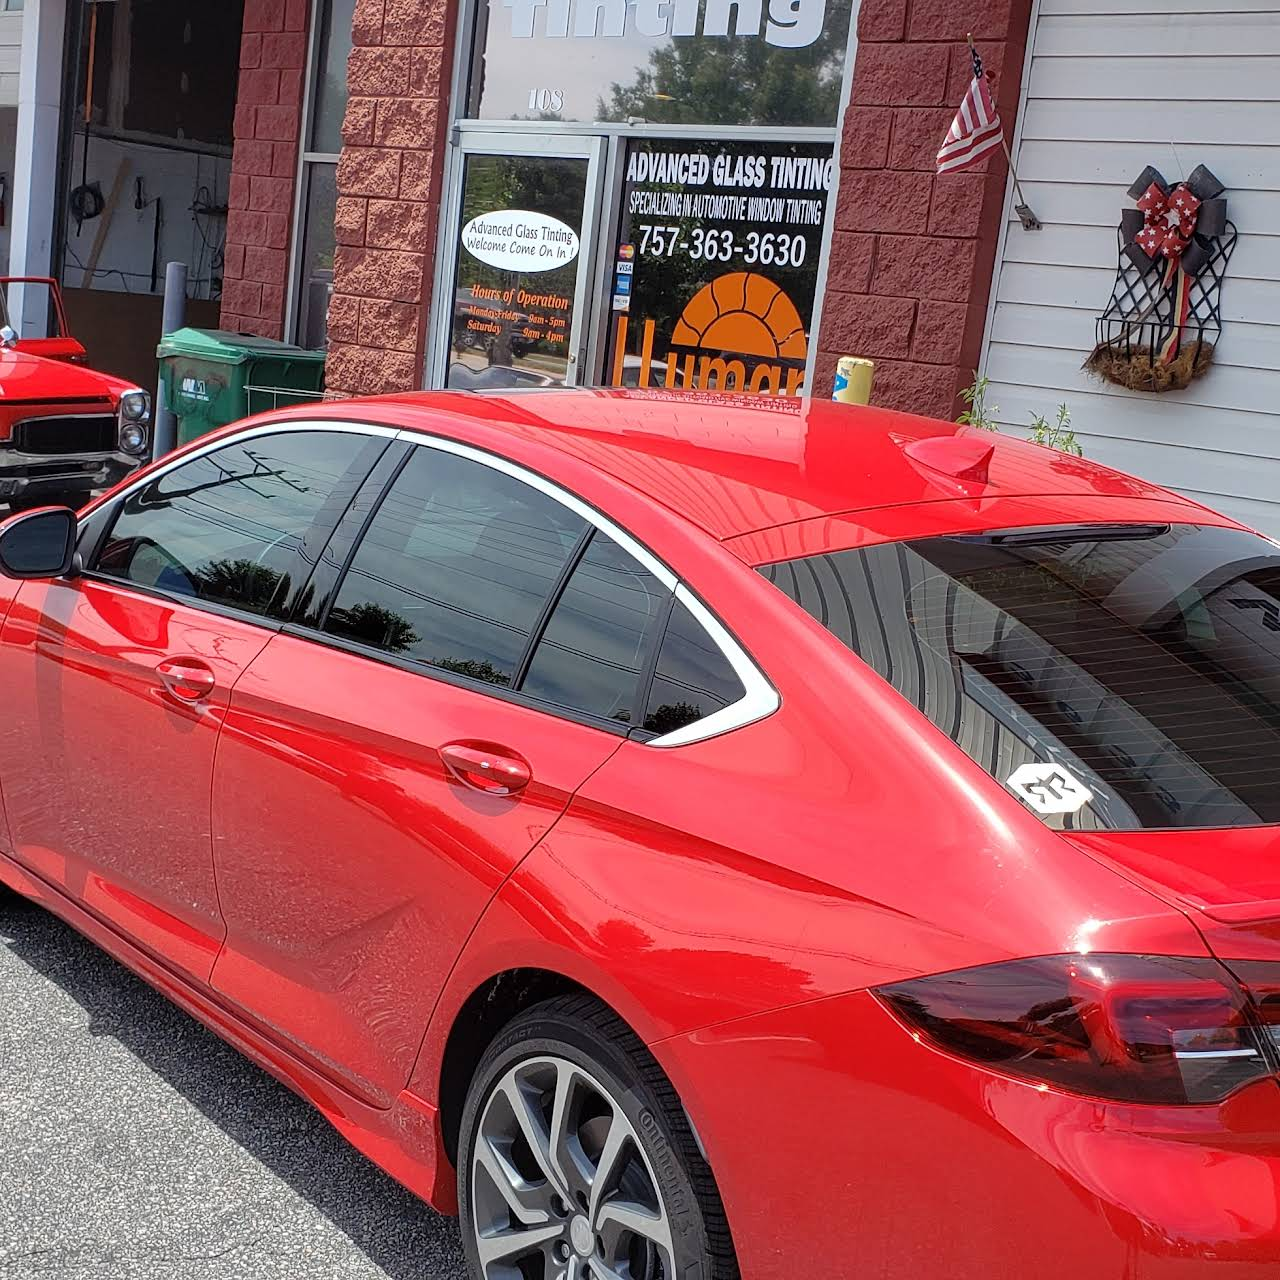 Tnt Tinting Virginia Beach >> Advanced Glass Tinting Window Tinting Service In Virginia Beach